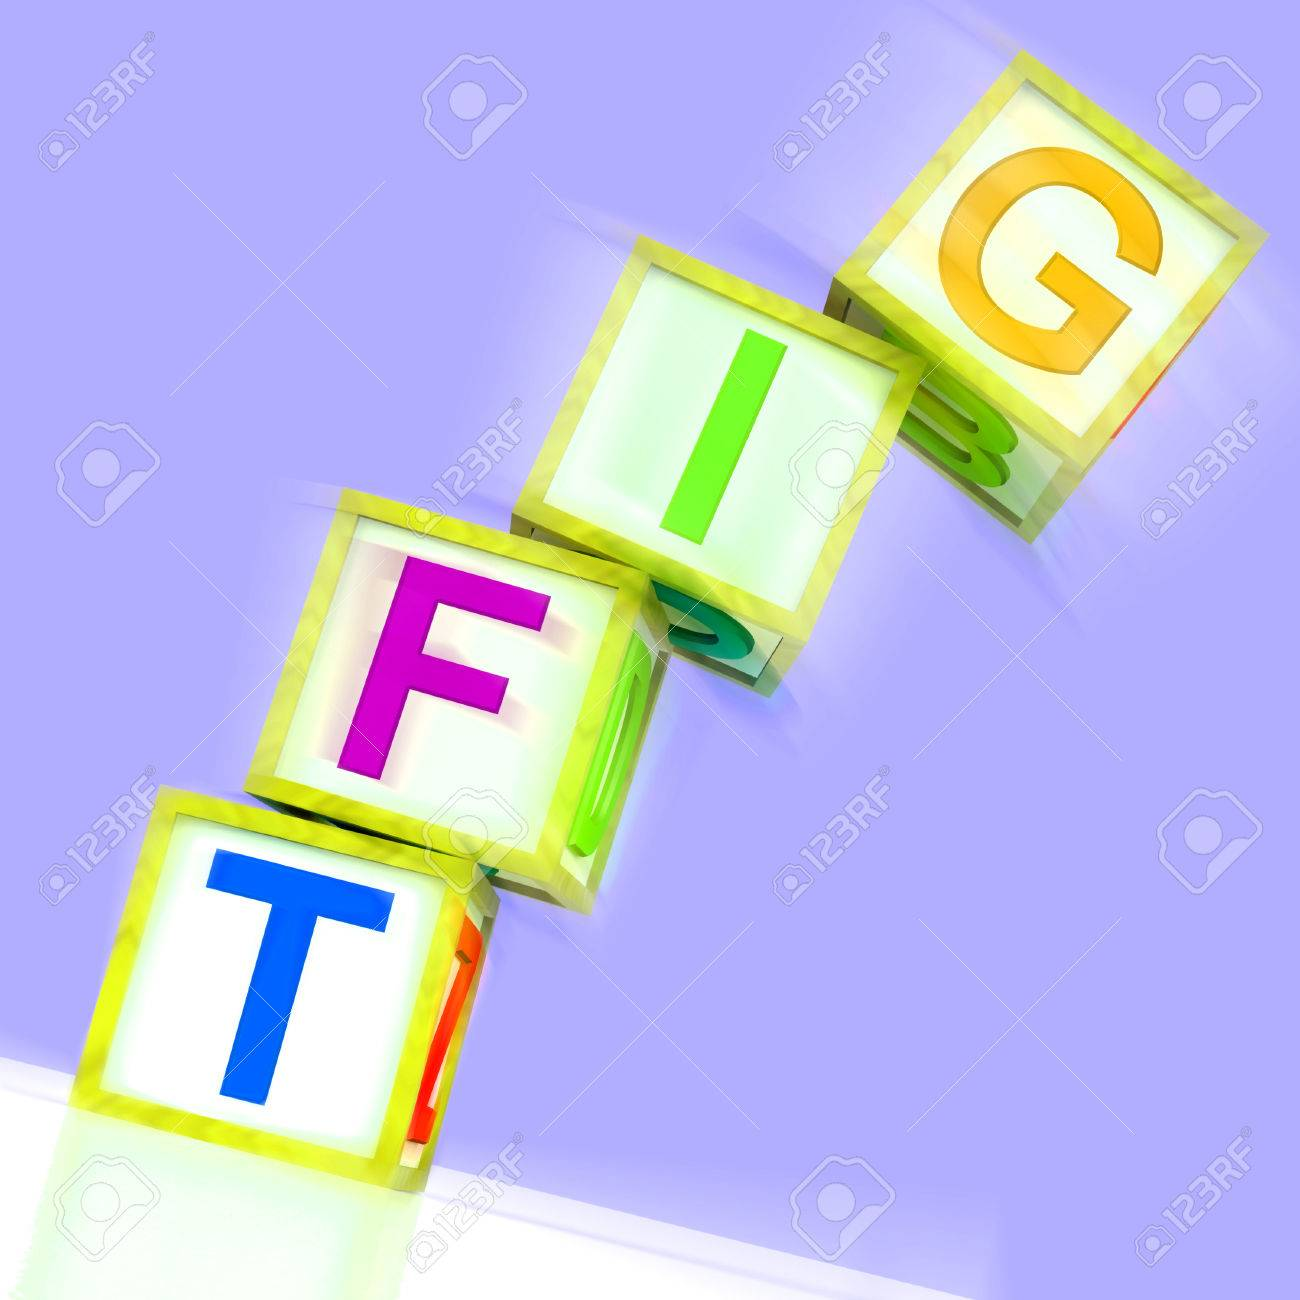 Gift word meaning present contribution or giving stock photo gift word meaning present contribution or giving stock photo 29057043 negle Images